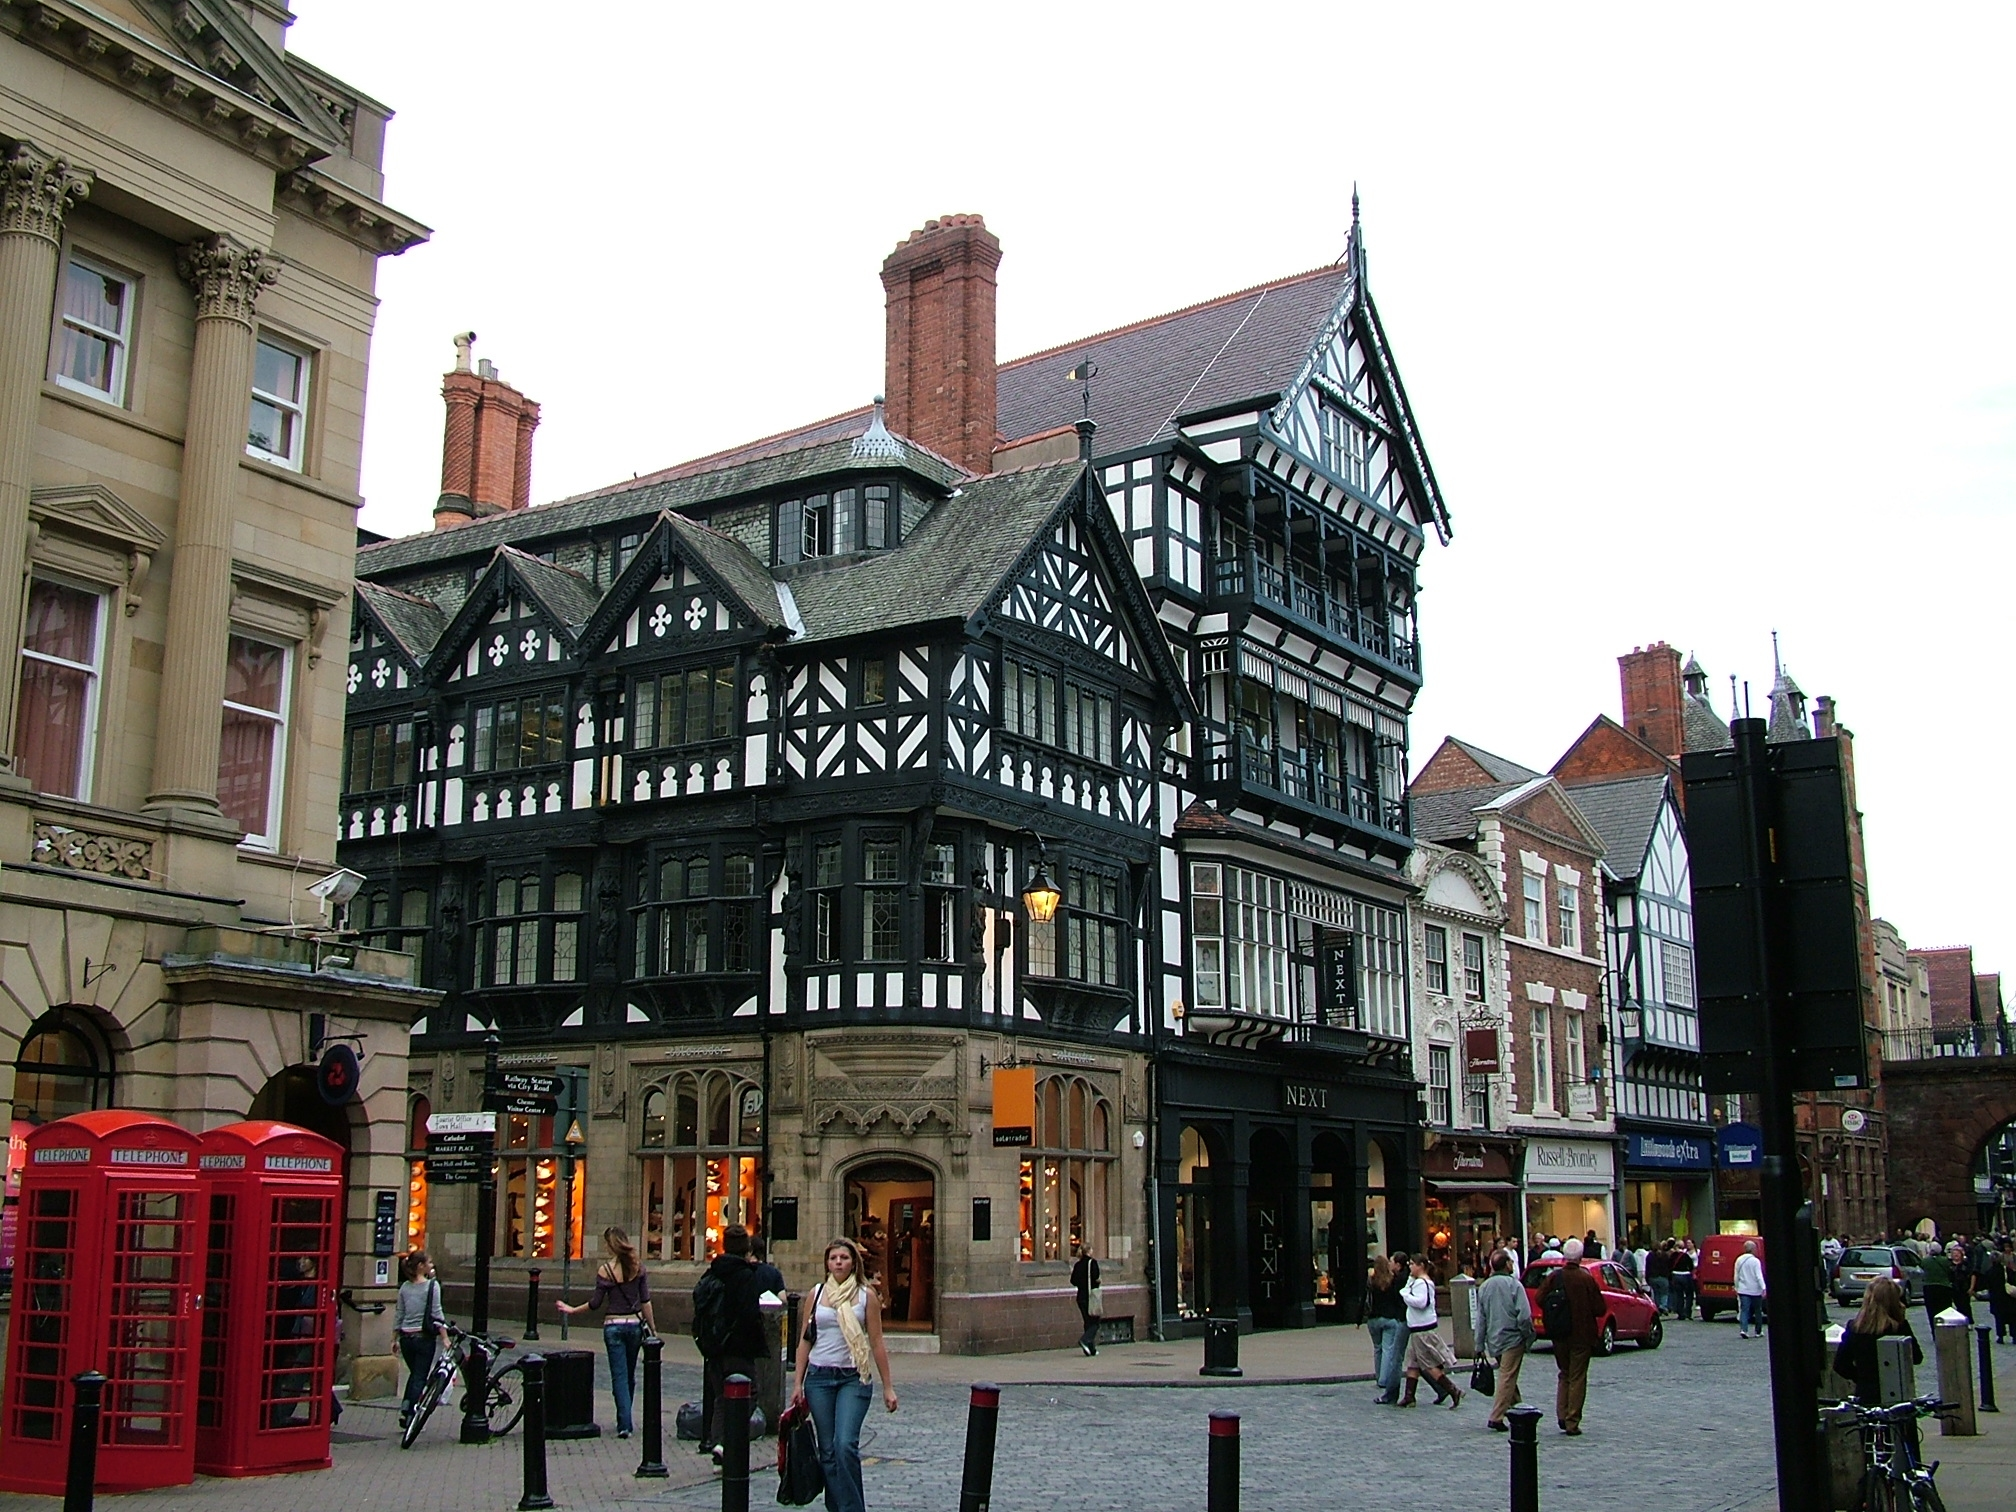 chester_-_shops_in_city_centre_-_2005-10-09